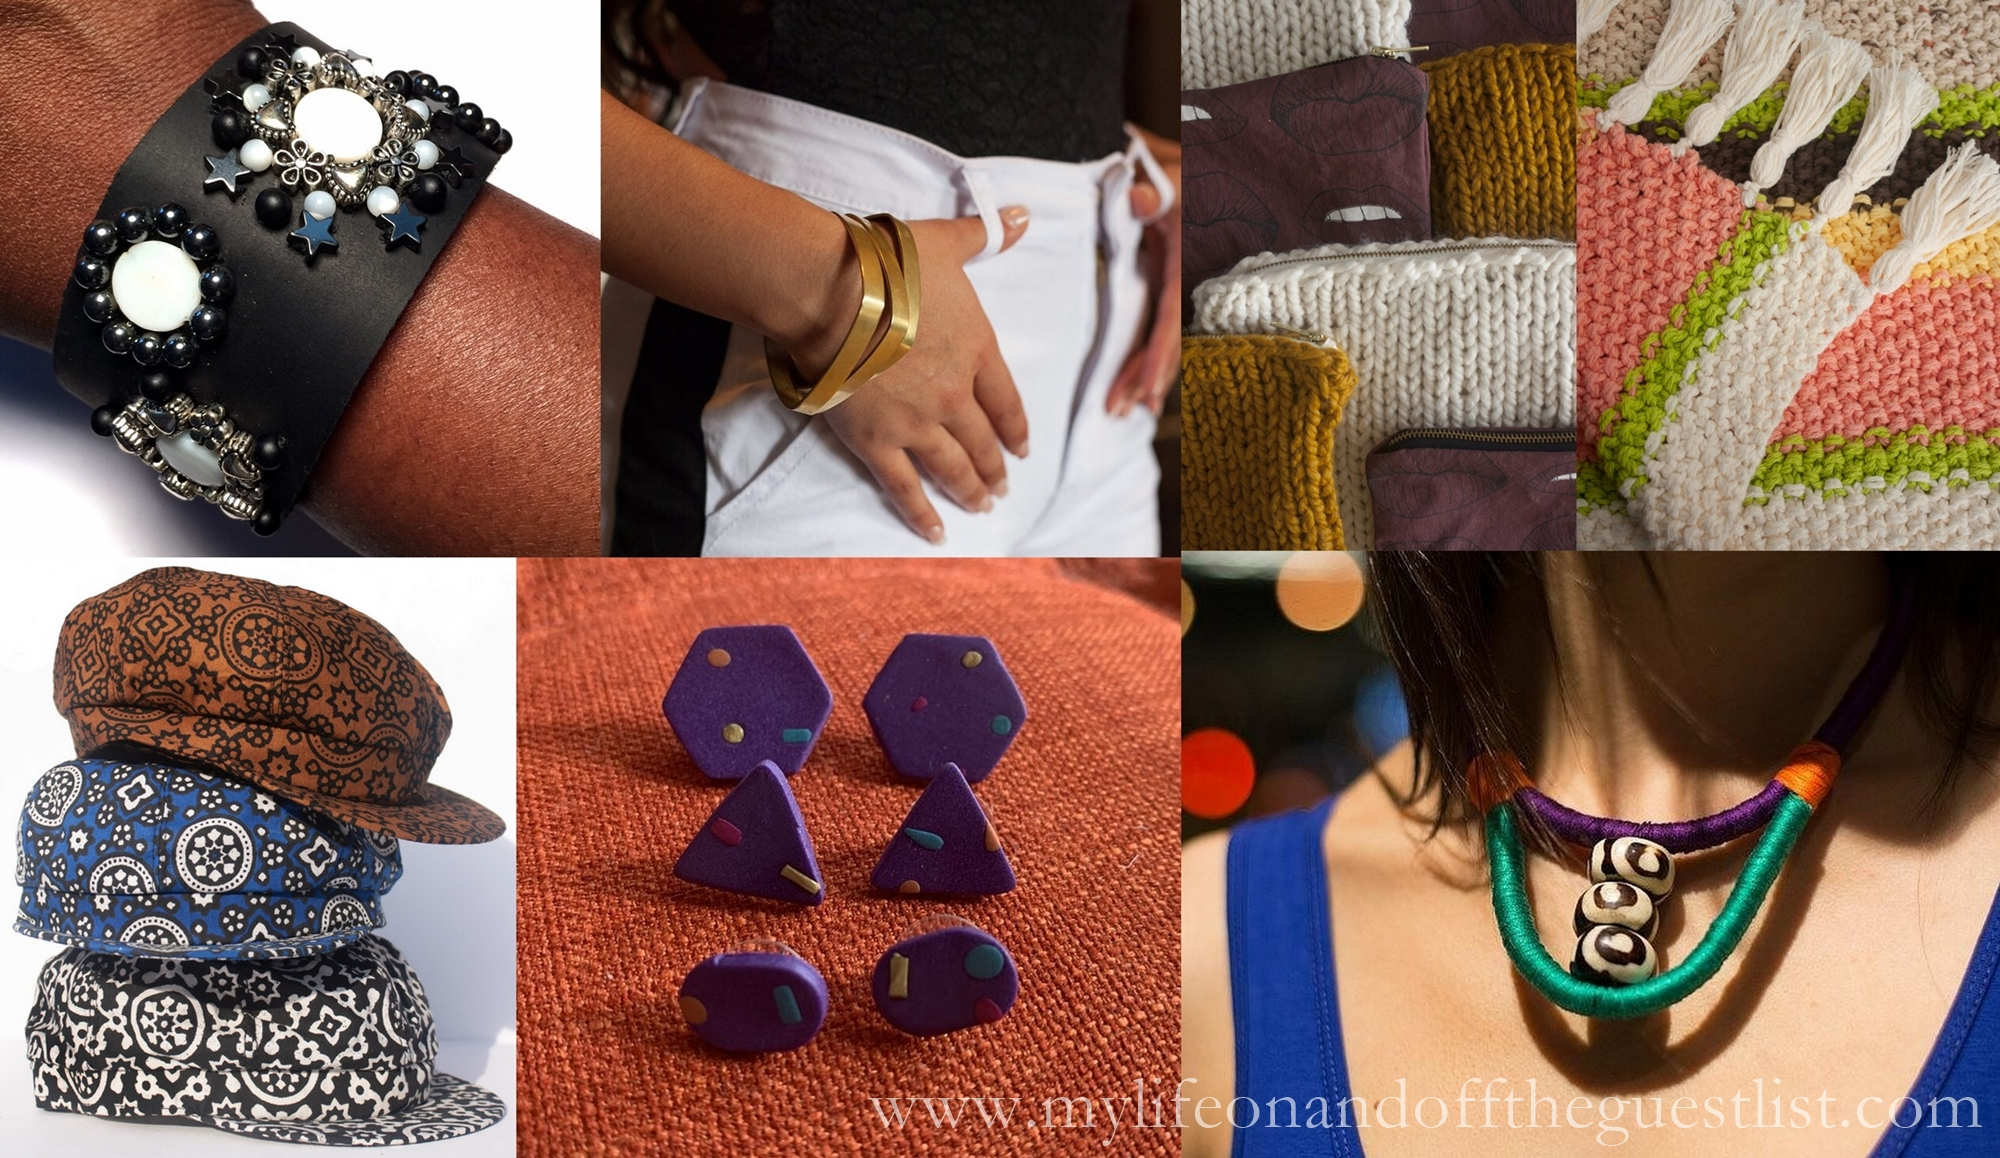 How To Support WOC Artisans This Holiday Season